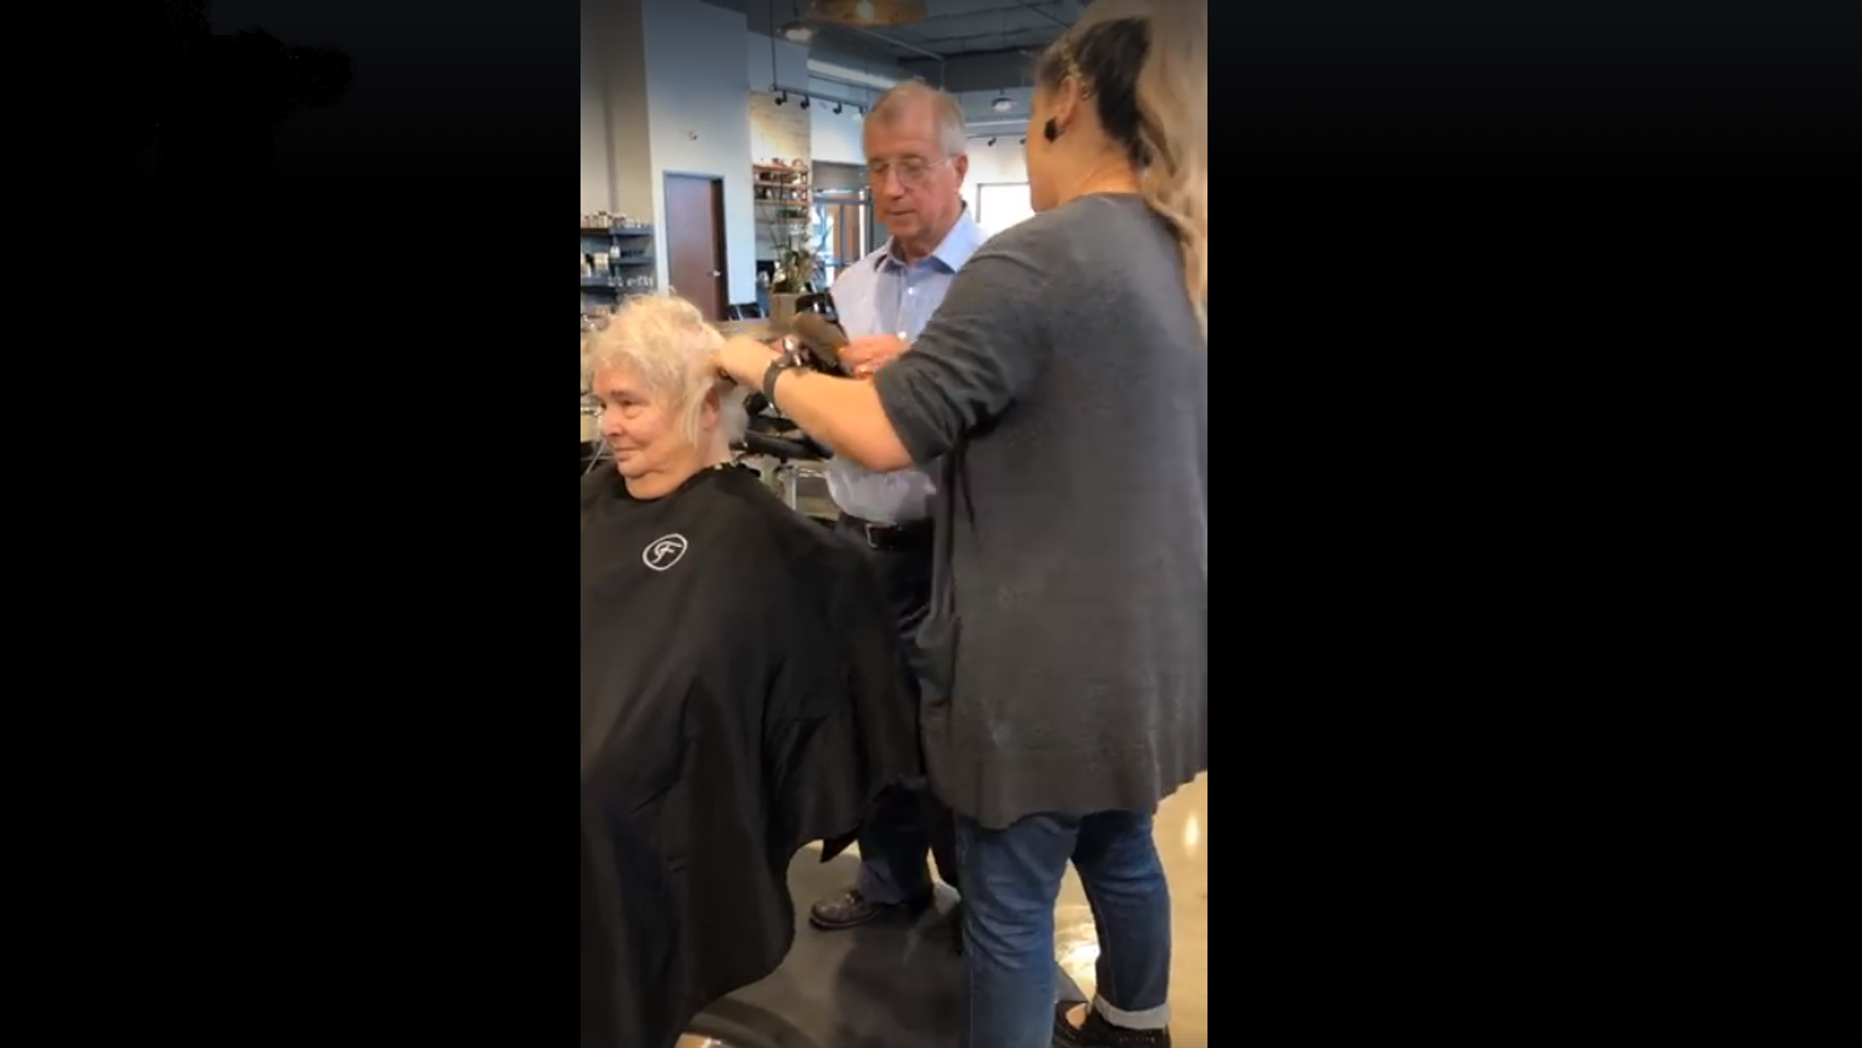 An elderly man in Texas learned how to style his wife's hair after she was unable to do so herself.